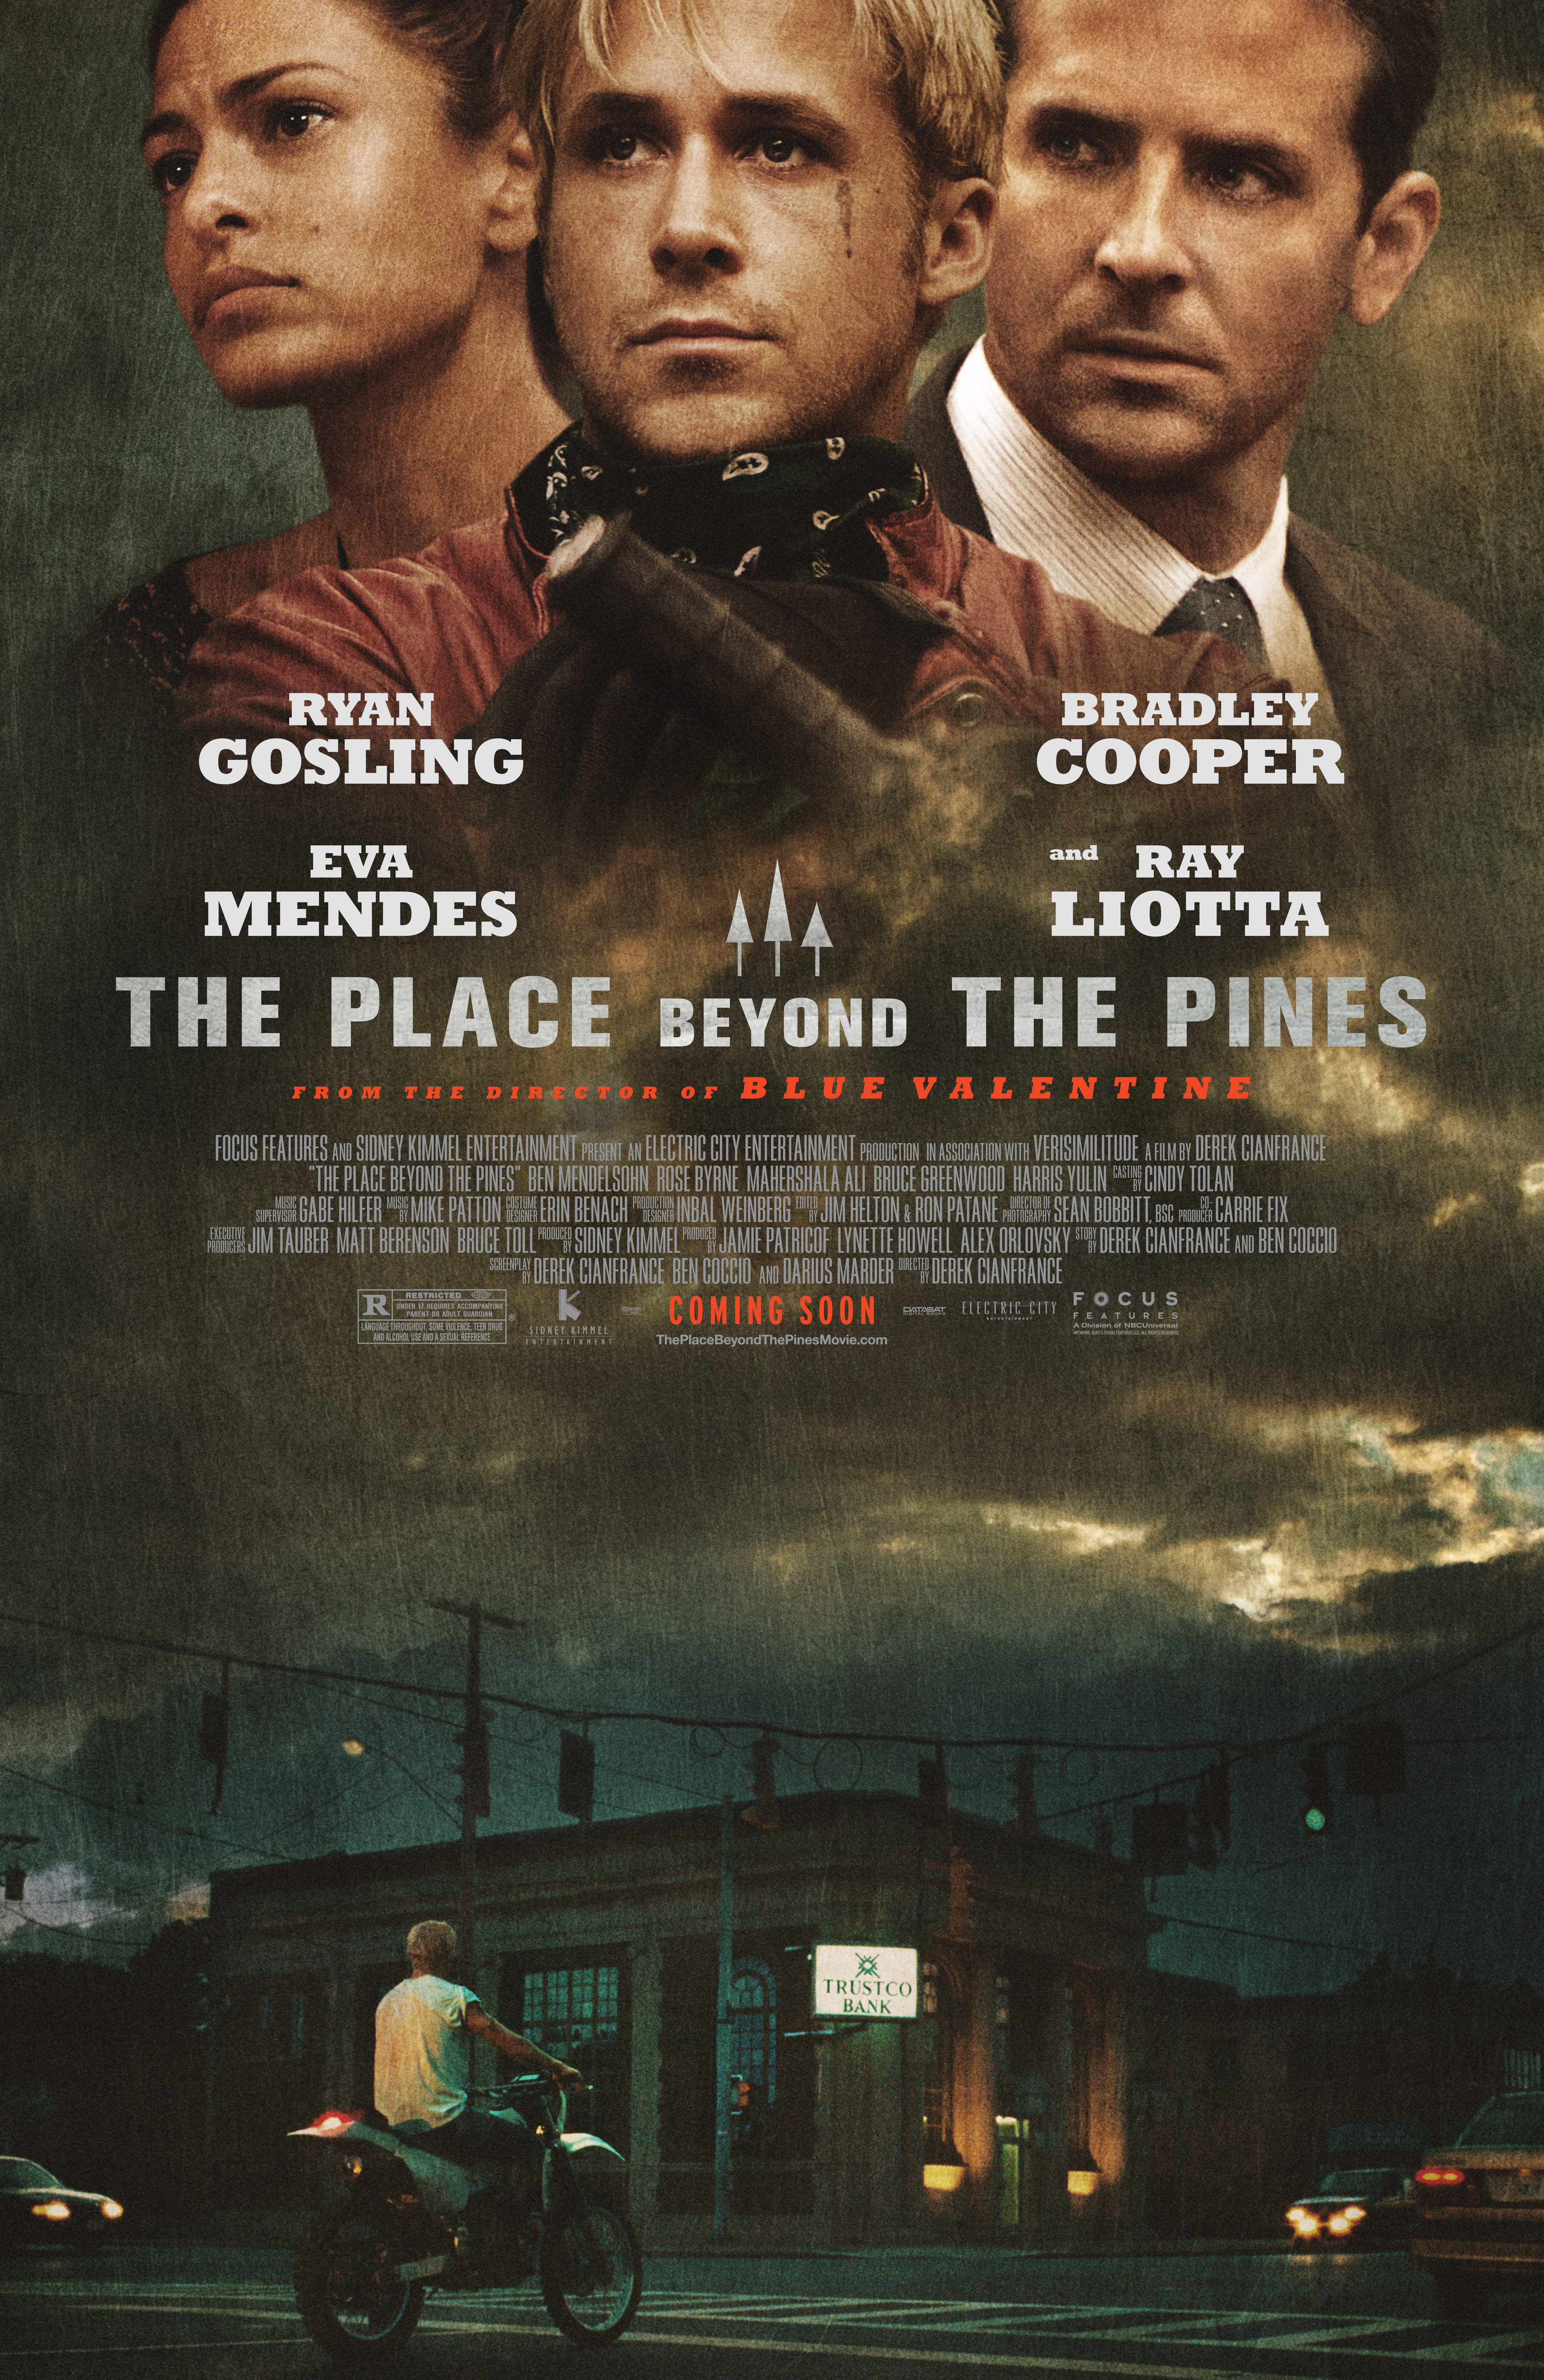 FIN06 Pines 1Sht P4 VF New Poster For The Place Beyond The Pines Released